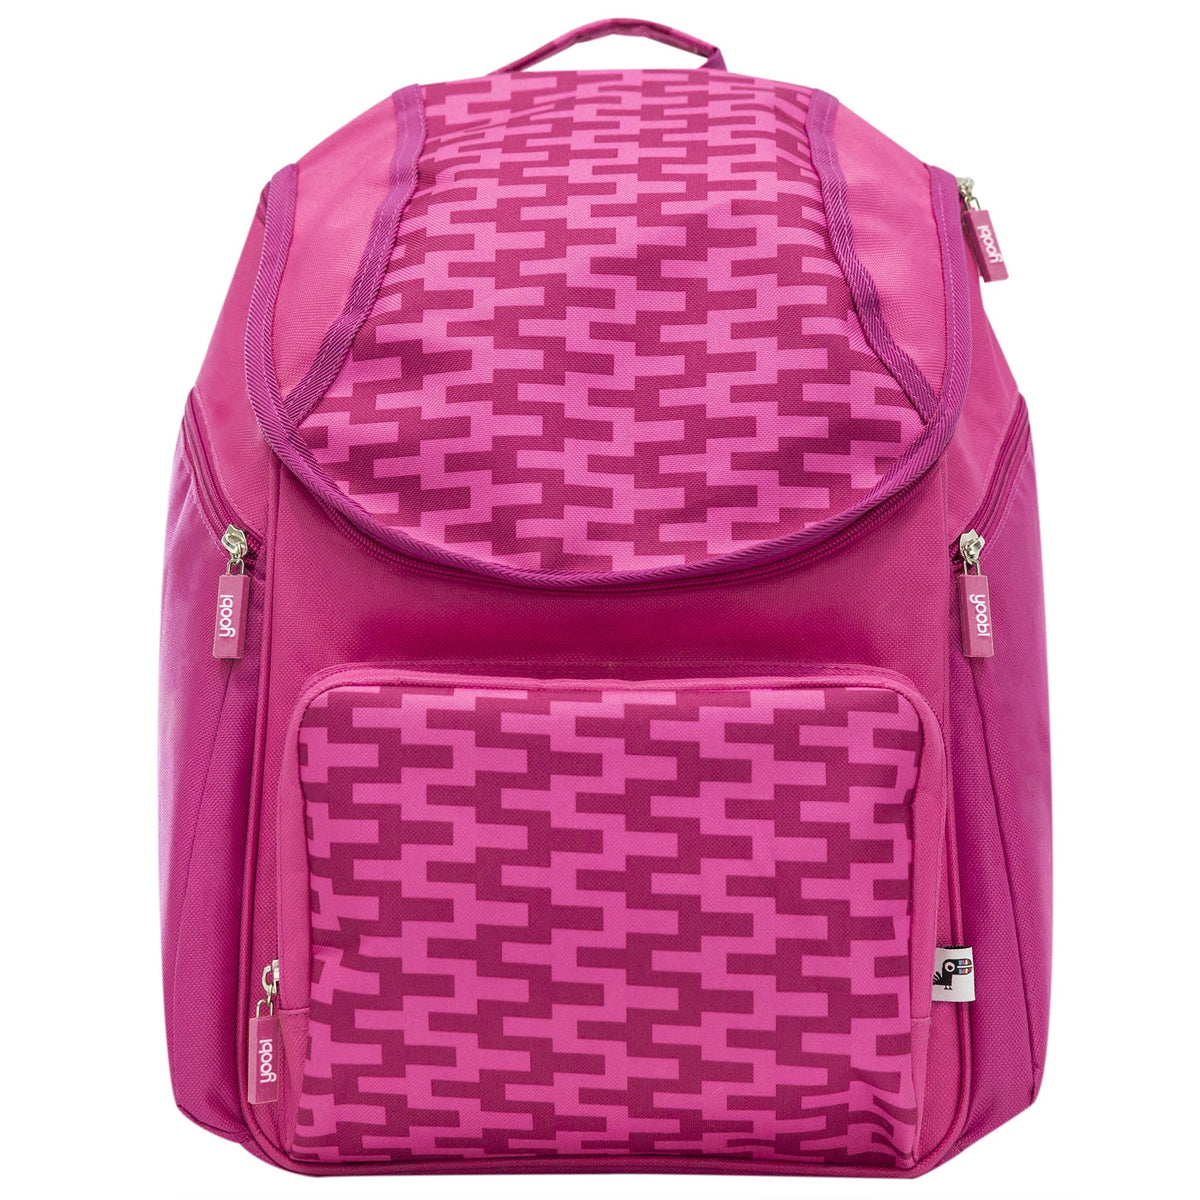 Top Flap Backpack - Pink Zig Zag